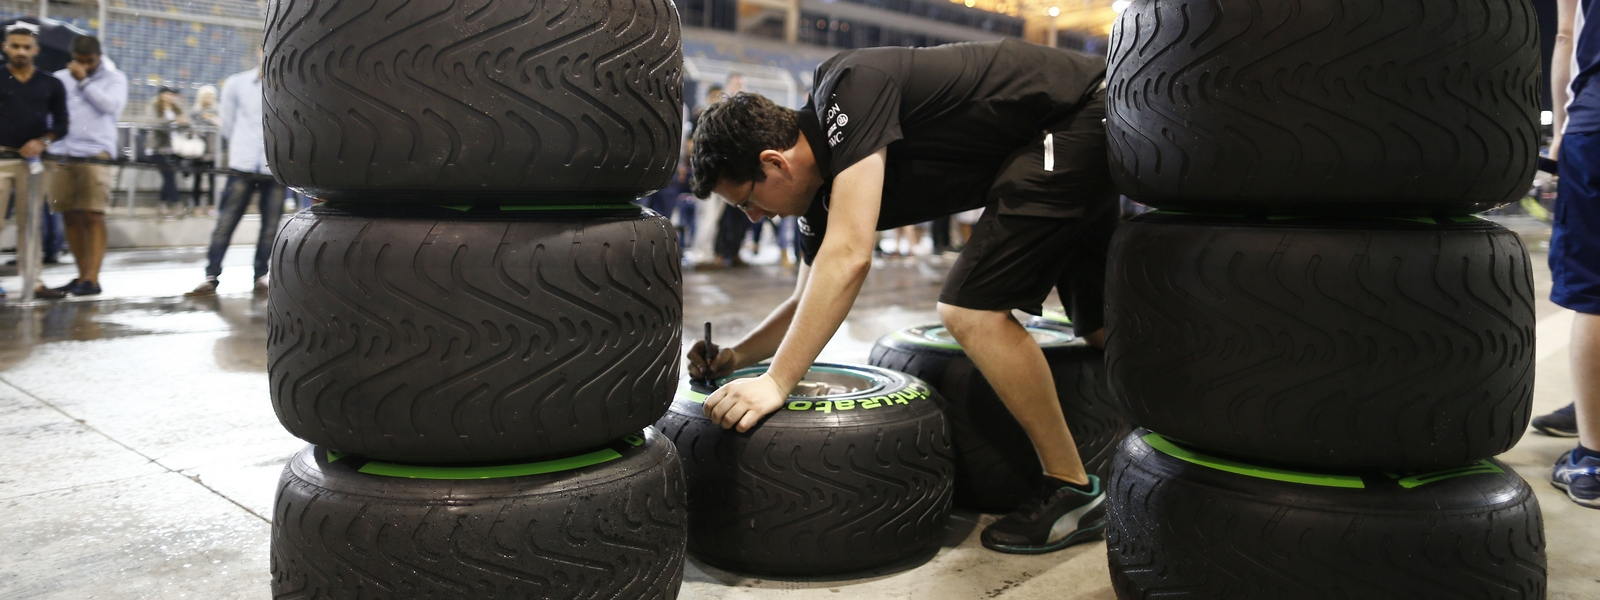 Motorsports: FIA Formula One World Championship 2016, Grand Prix of Bahrain,  Pirelli, tire, tires, tyre, tyres, wheel, wheels, Reifen, Rad, feature *** Local Caption *** +++ www.hoch-zwei.net +++ copyright: HOCH ZWEI +++